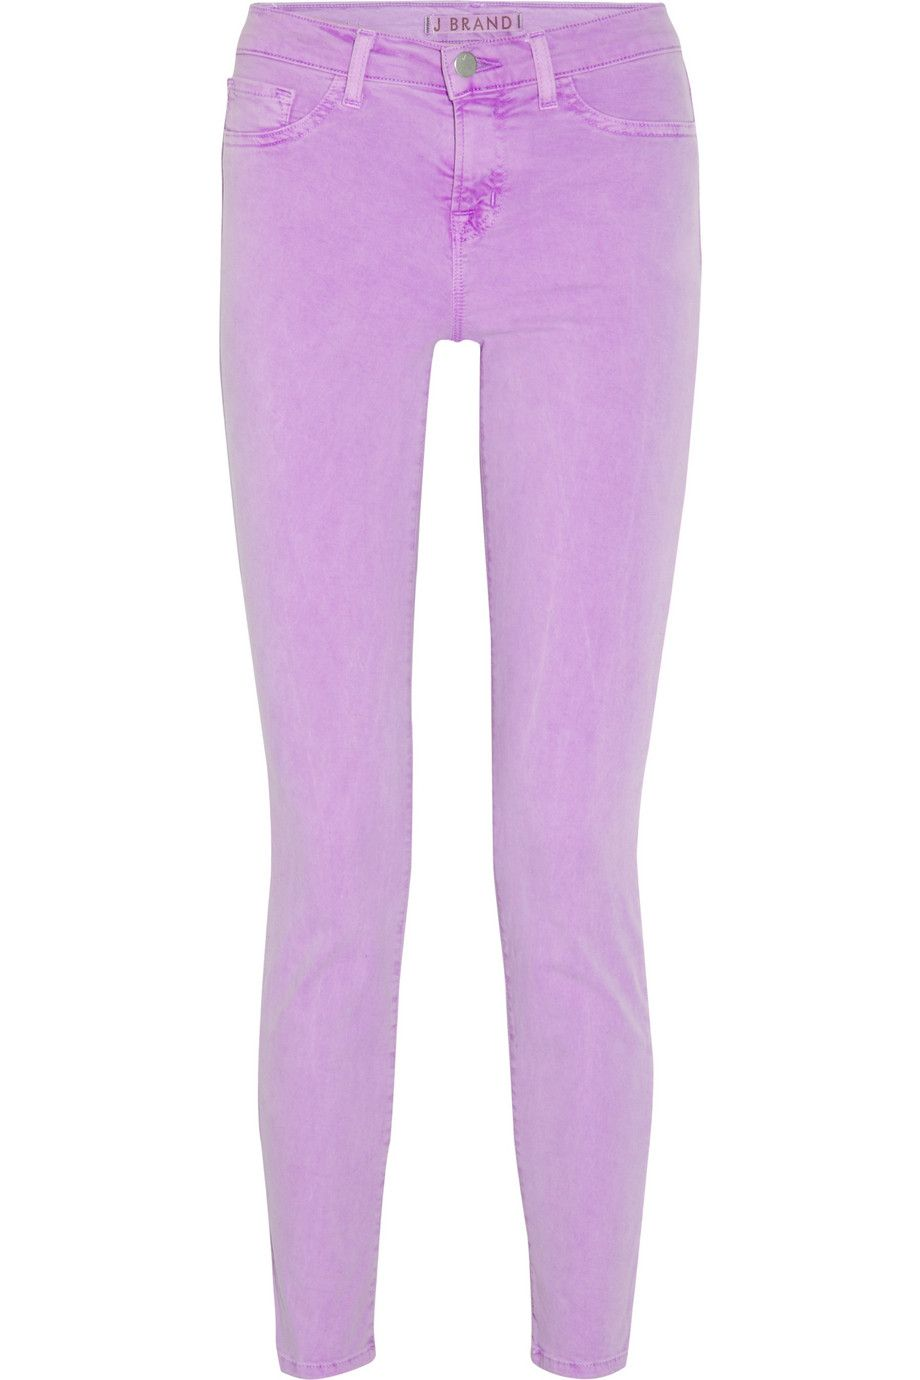 cropped skinny jeans - Pink & Purple J Brand